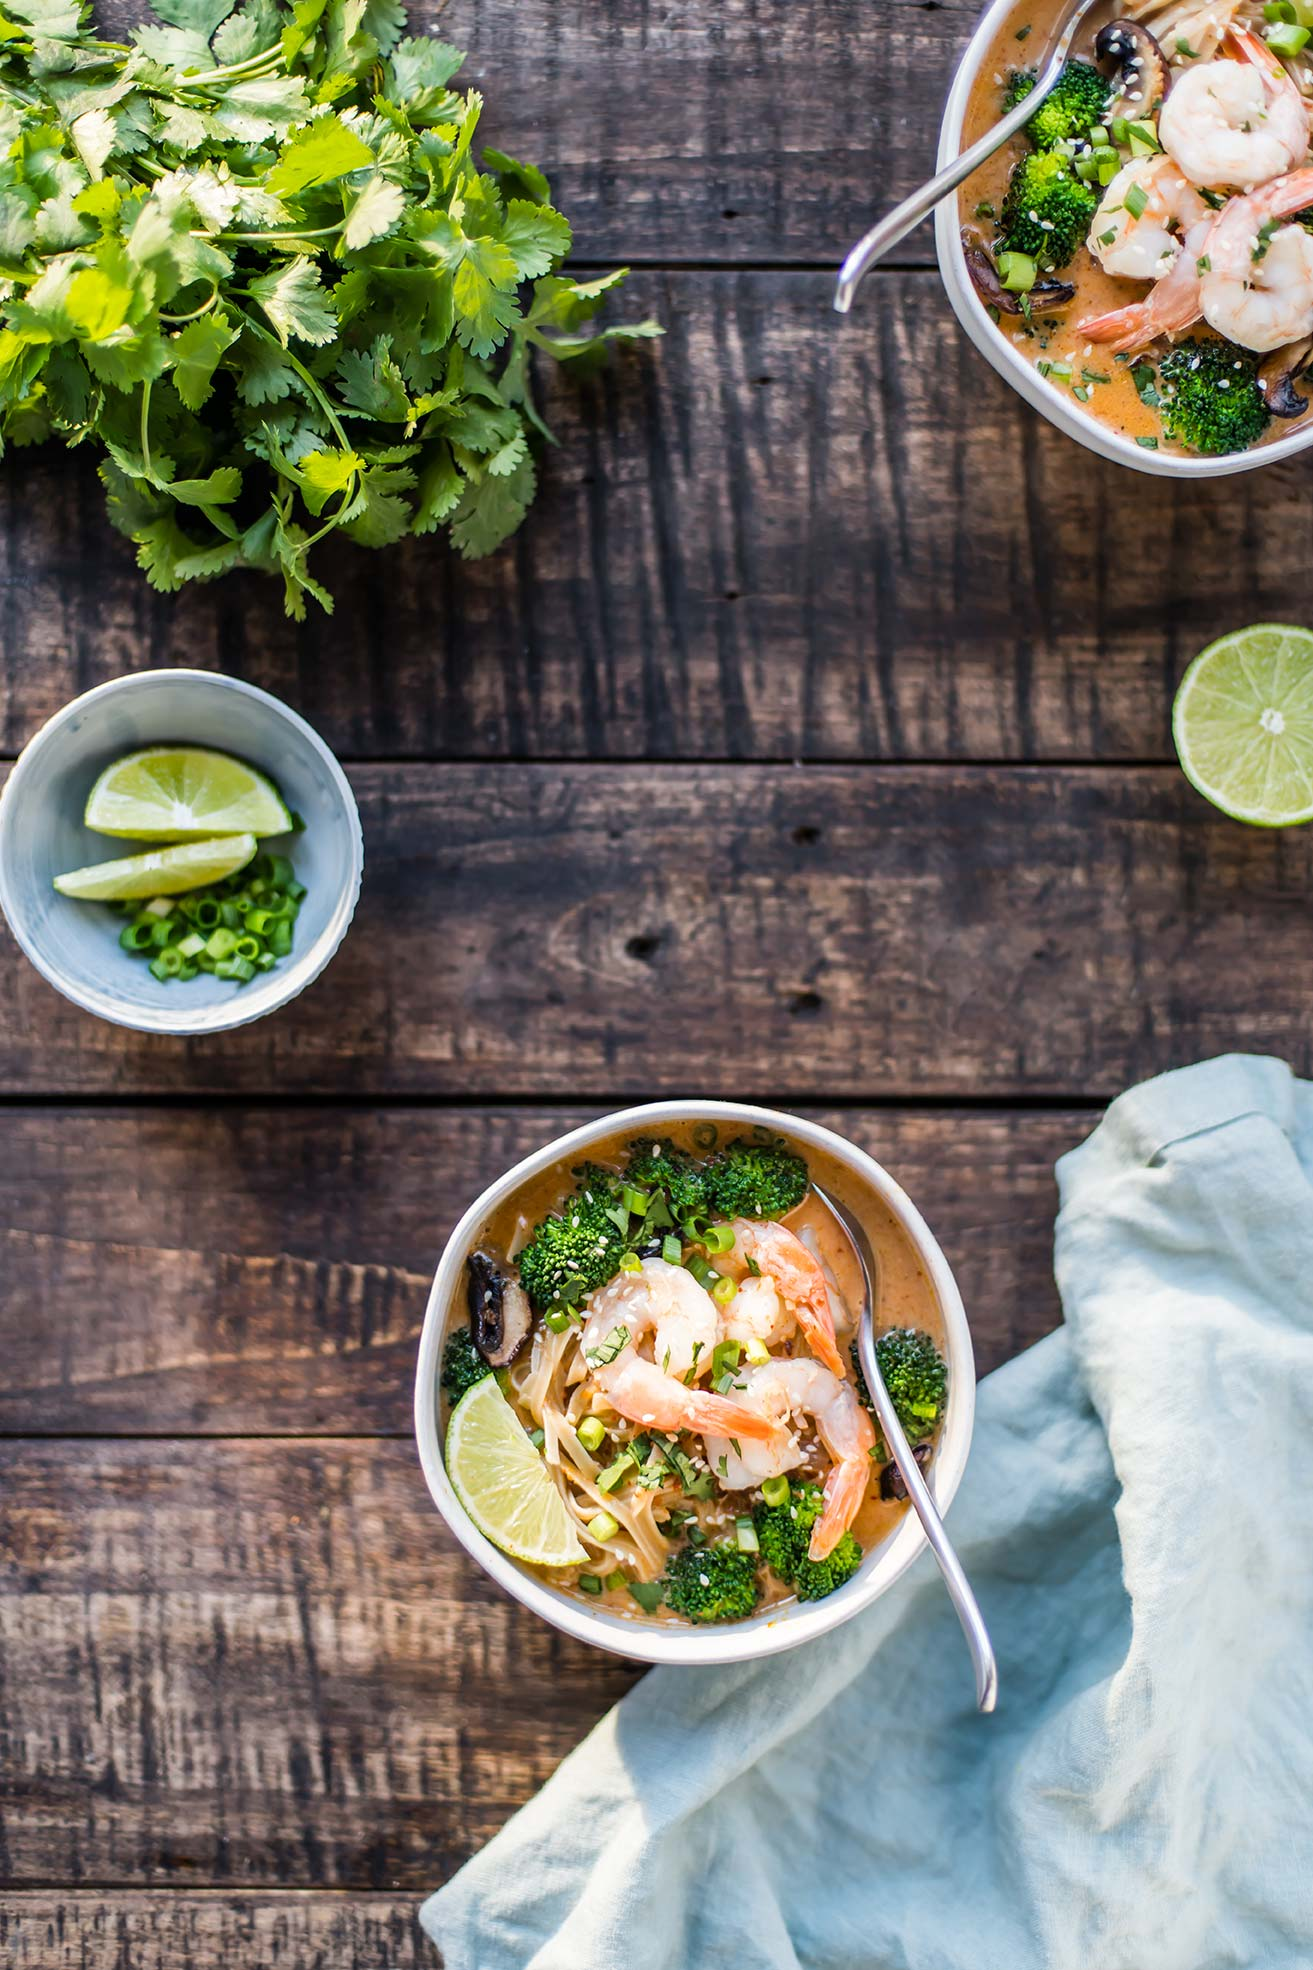 Red Curry Noodle Bowl with Shrimp & Broccoli